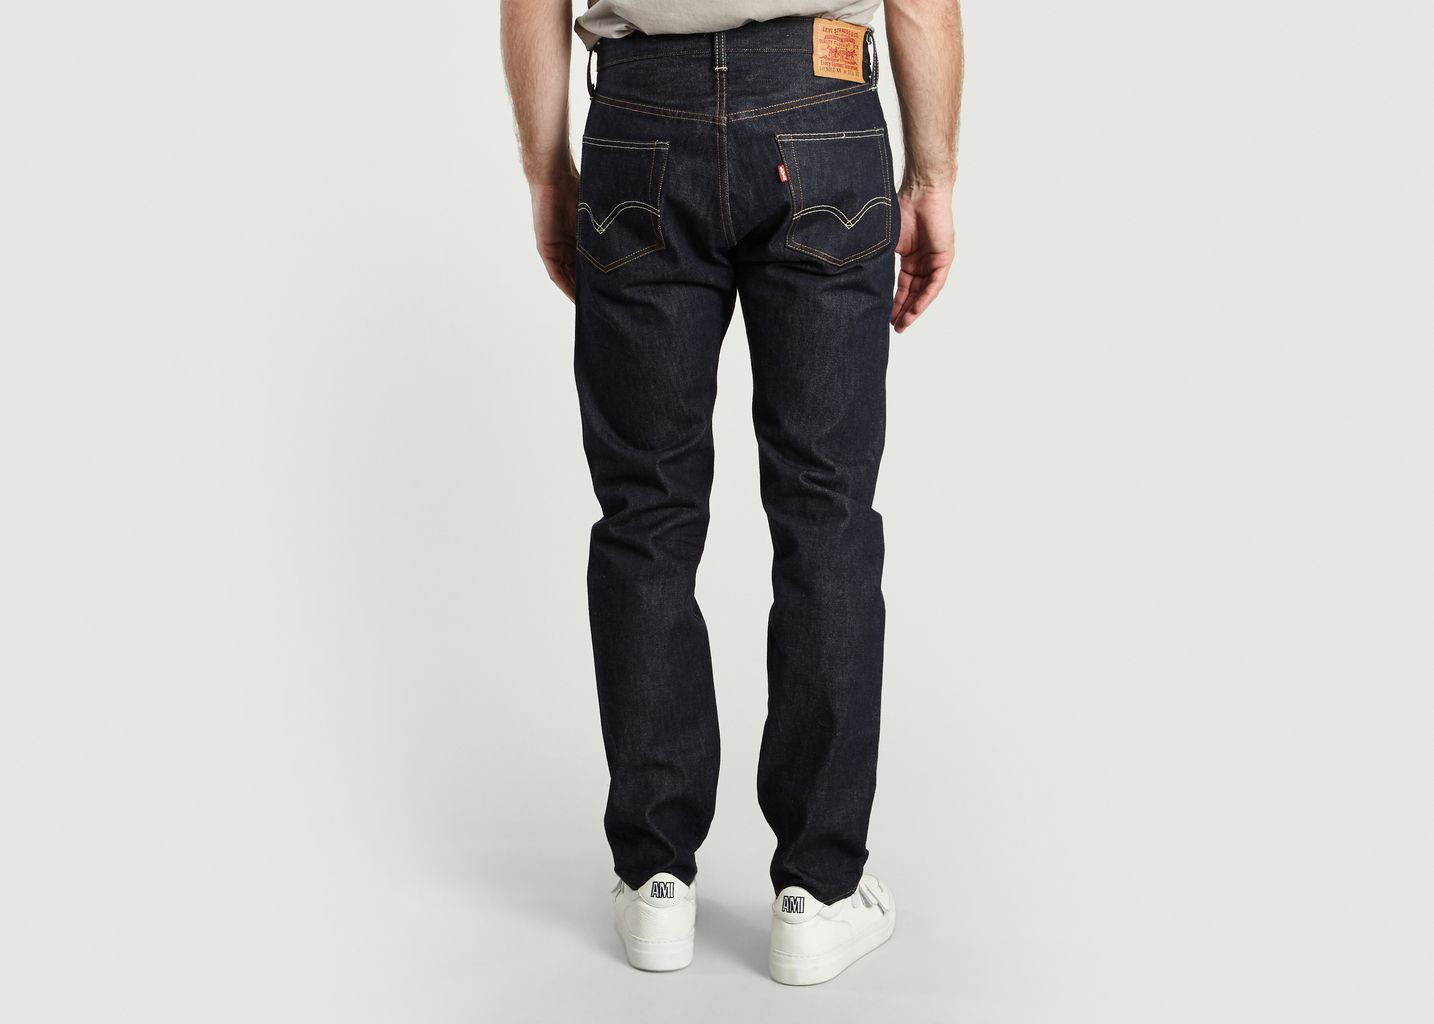 98f72e8925 1954 501® New Rinse Jeans Raw Levi's Vintage Clothing | L'Exception